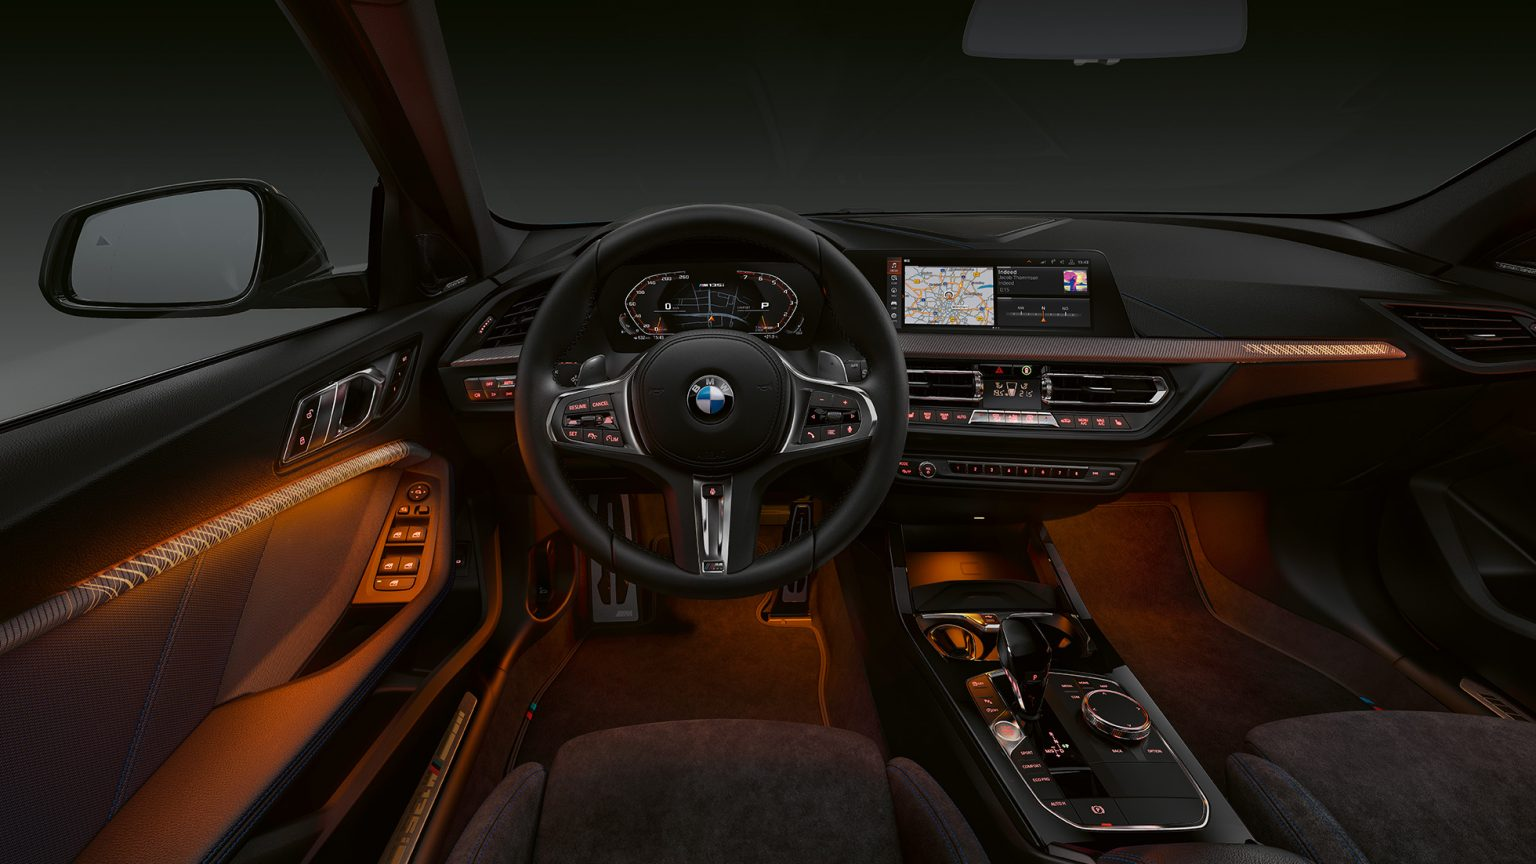 bmw-1-series-m135i-inspire-mg-exterior-interior-desktop-04